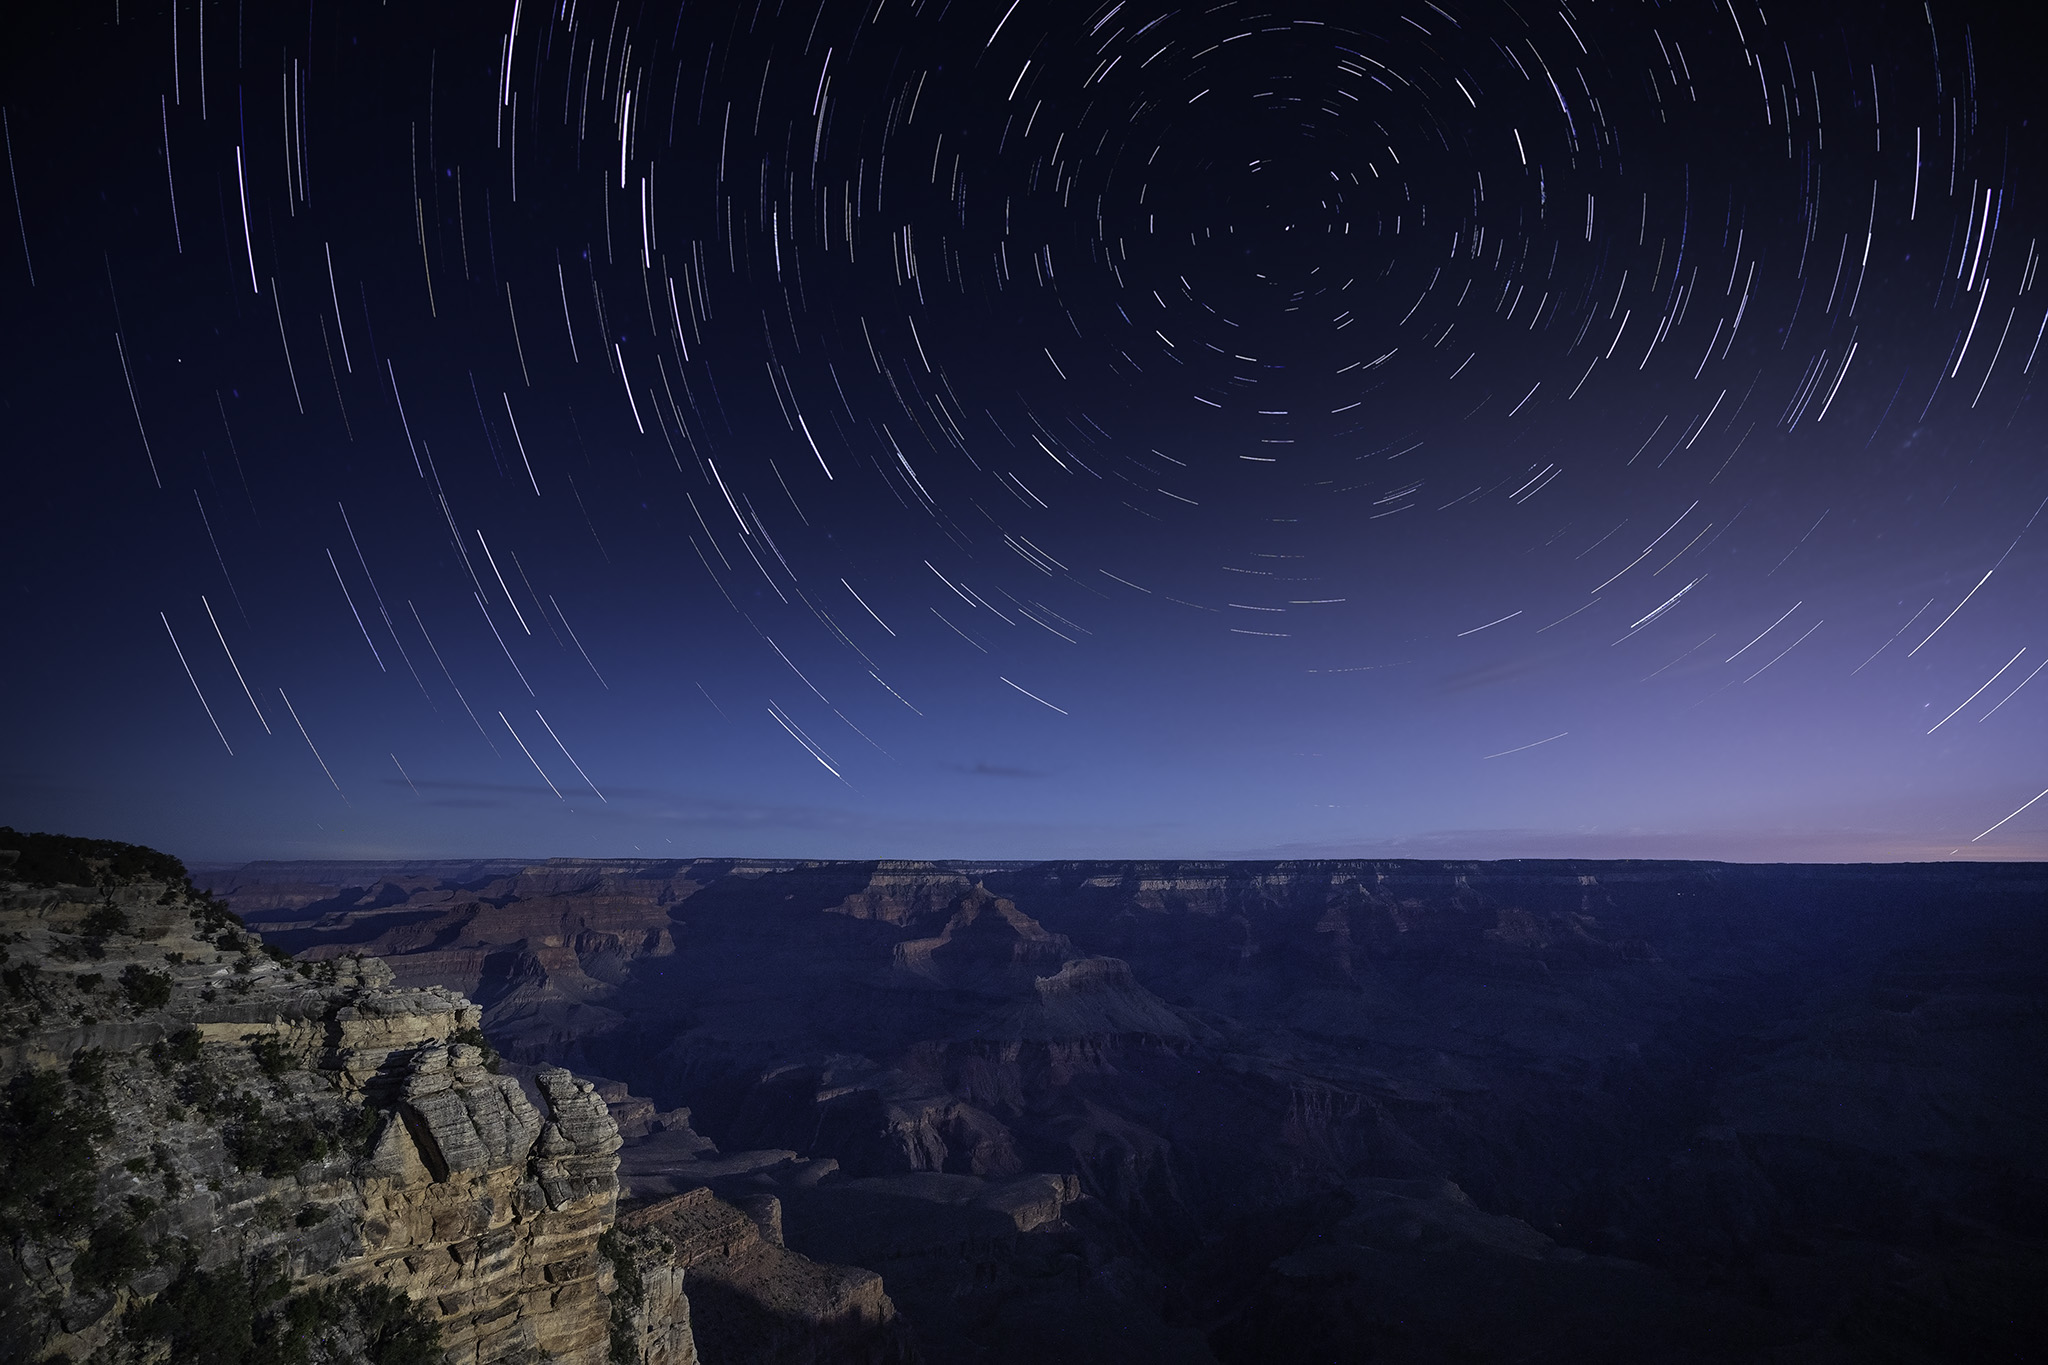 Star Trail at Mather Point, Grand Canyon National Park.